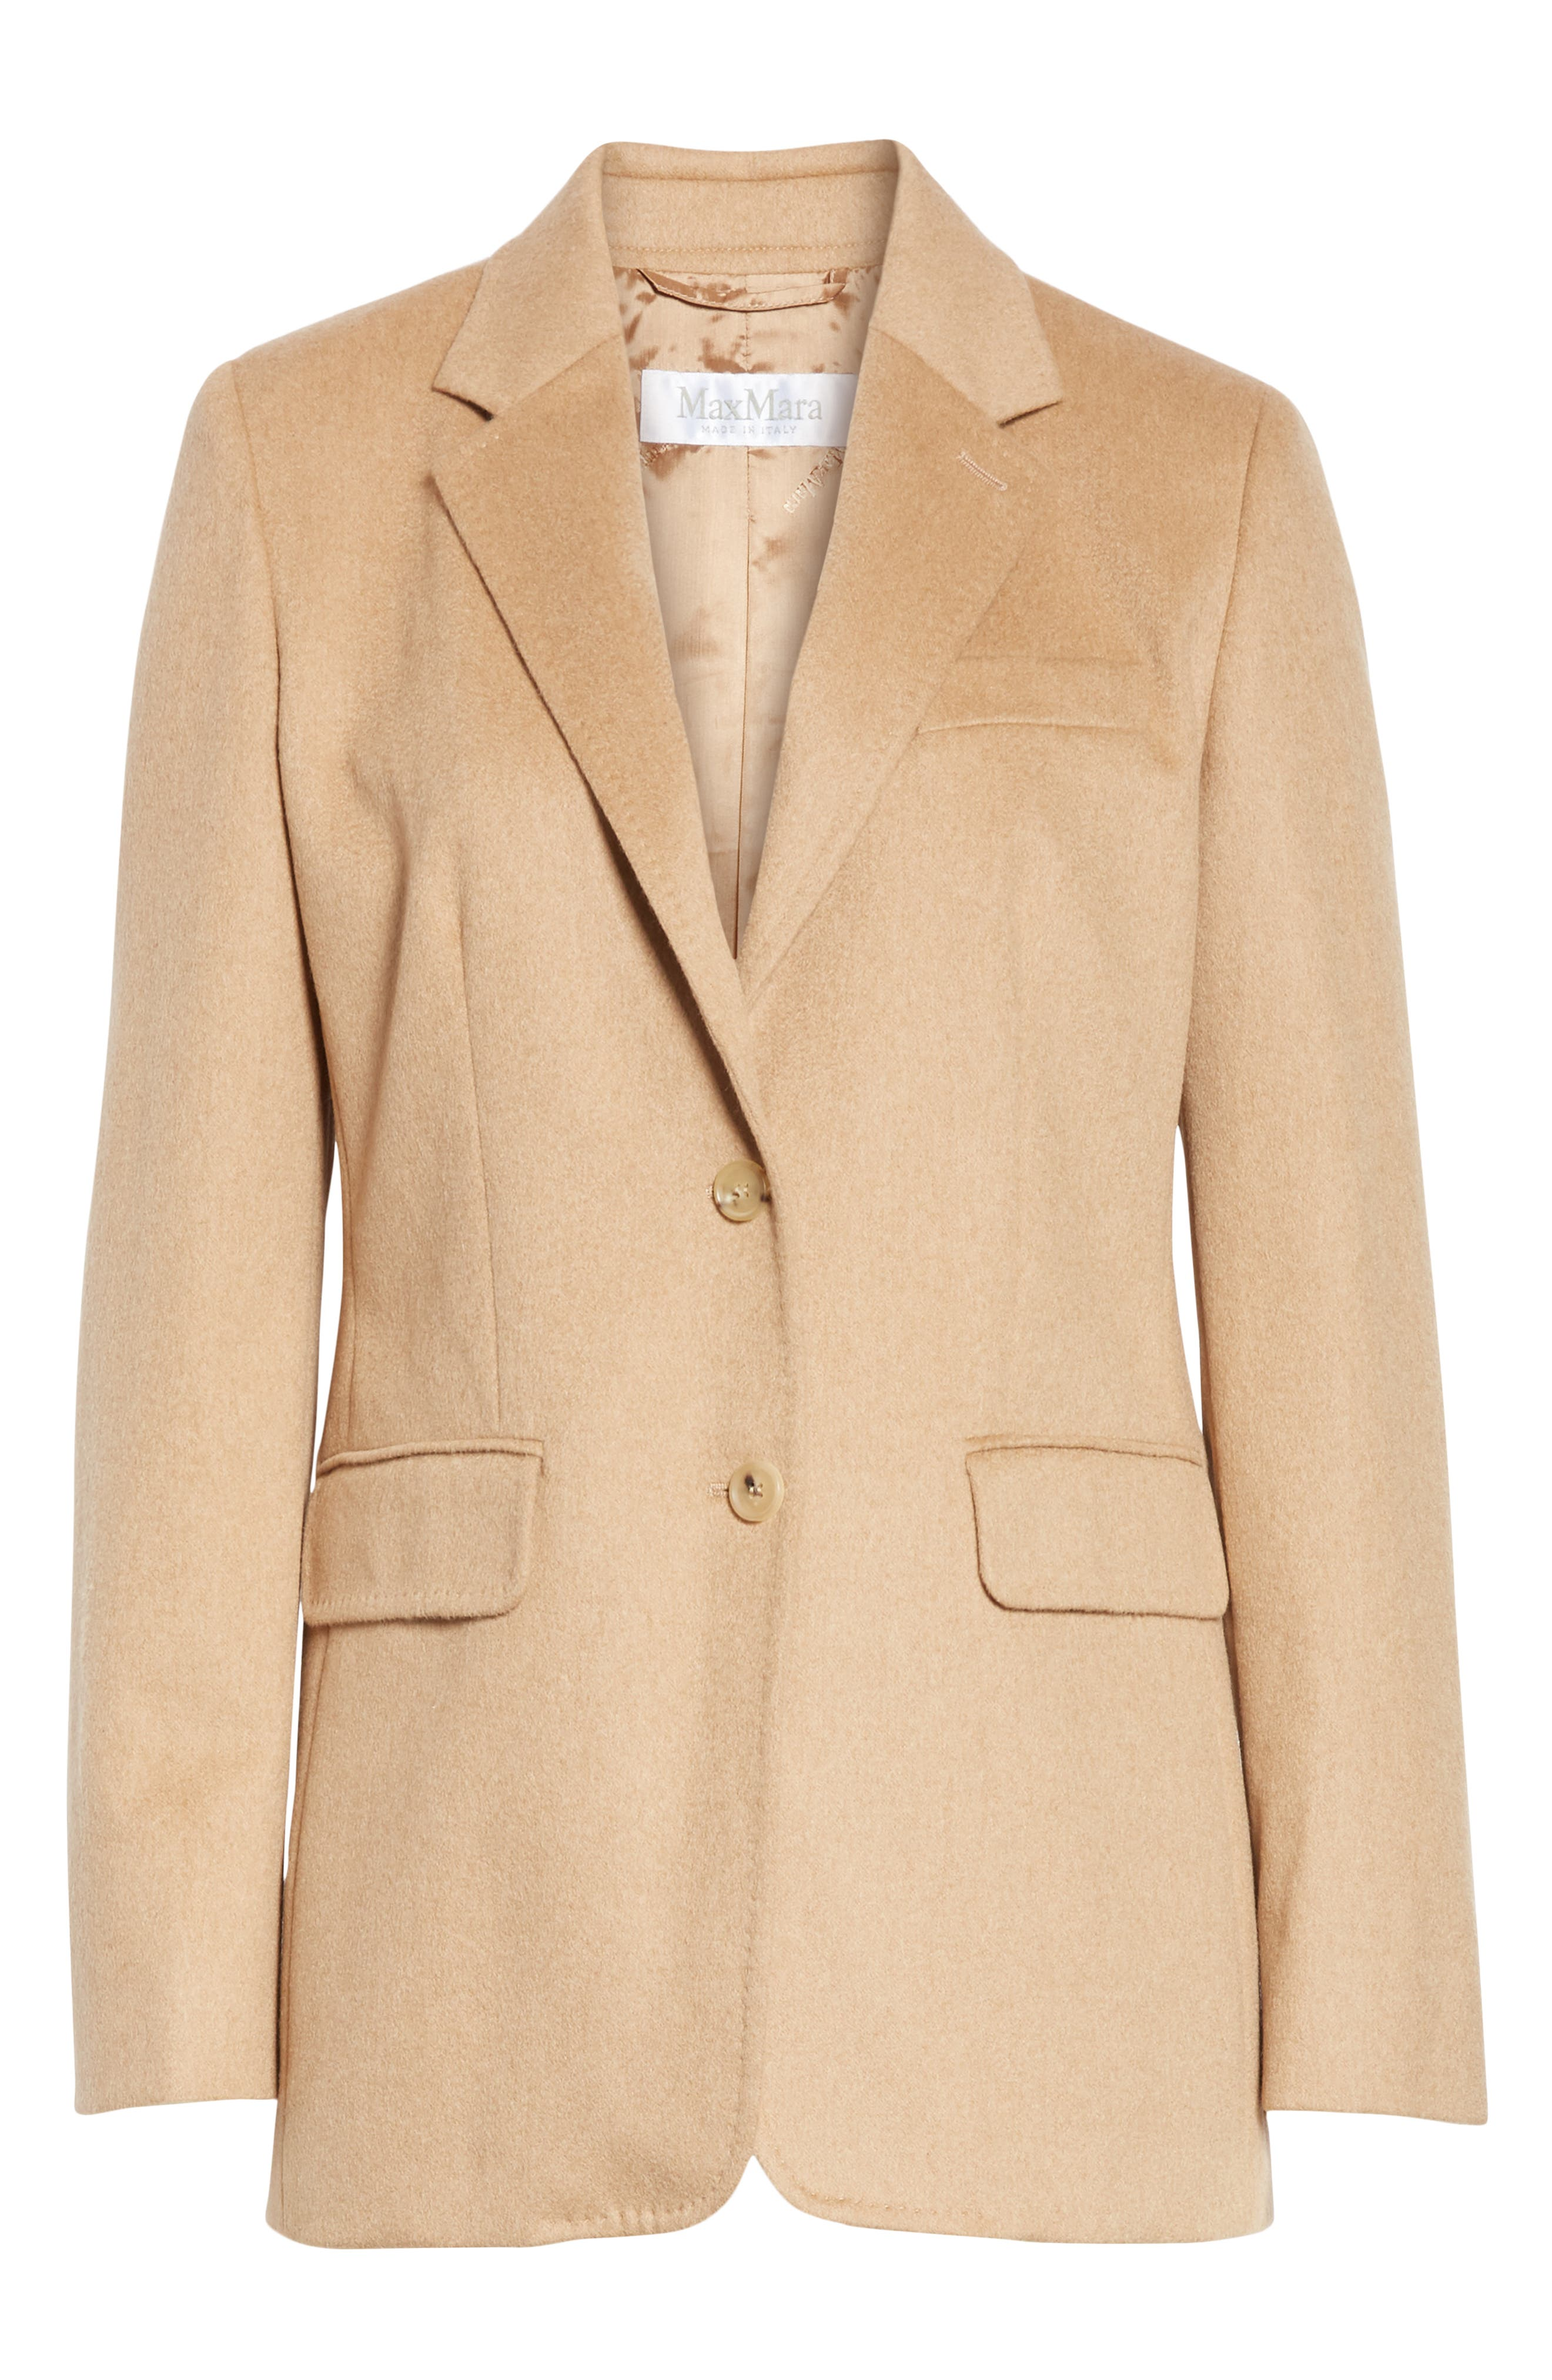 Panteon Camel Hair Jacket,                             Alternate thumbnail 5, color,                             232